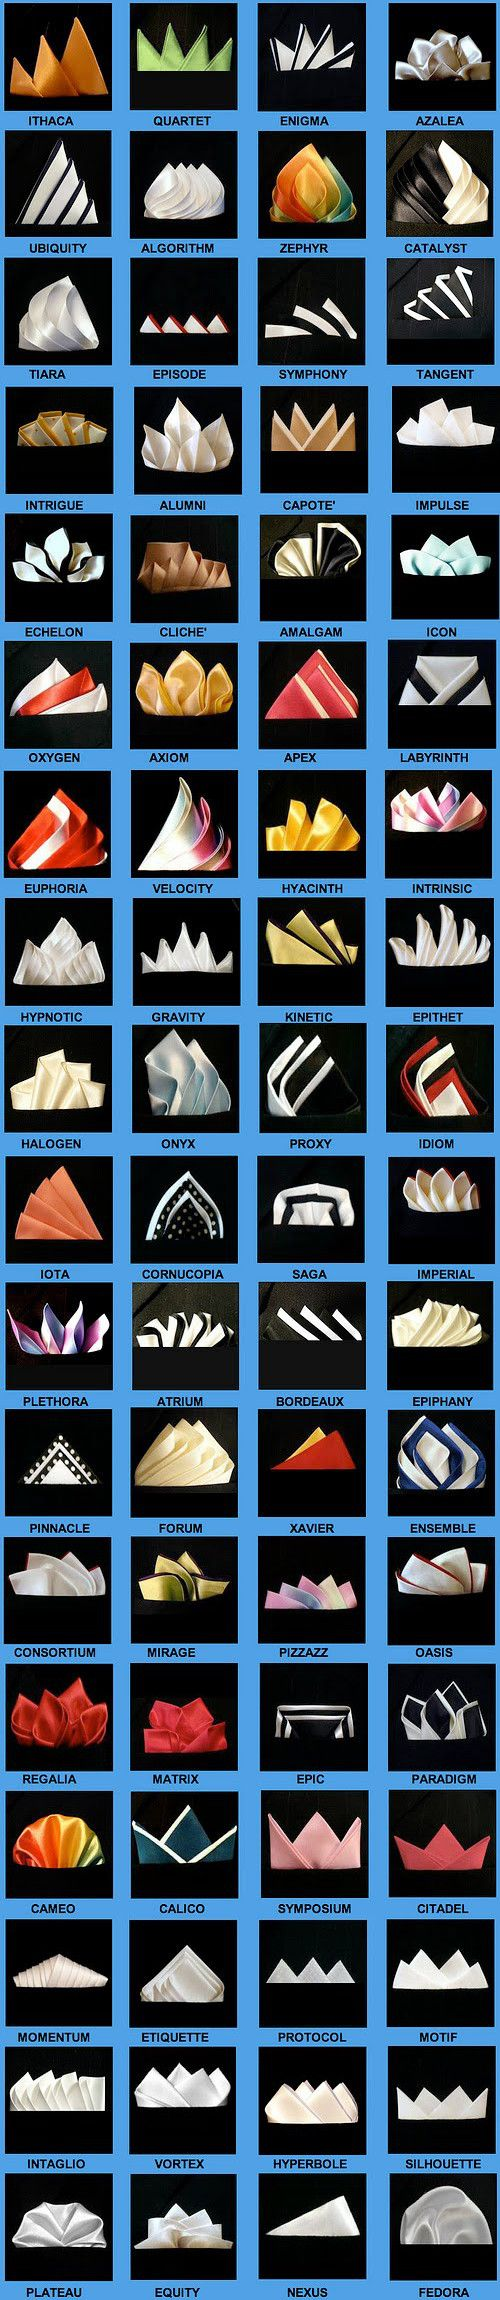 72 ways to fold a pocket square